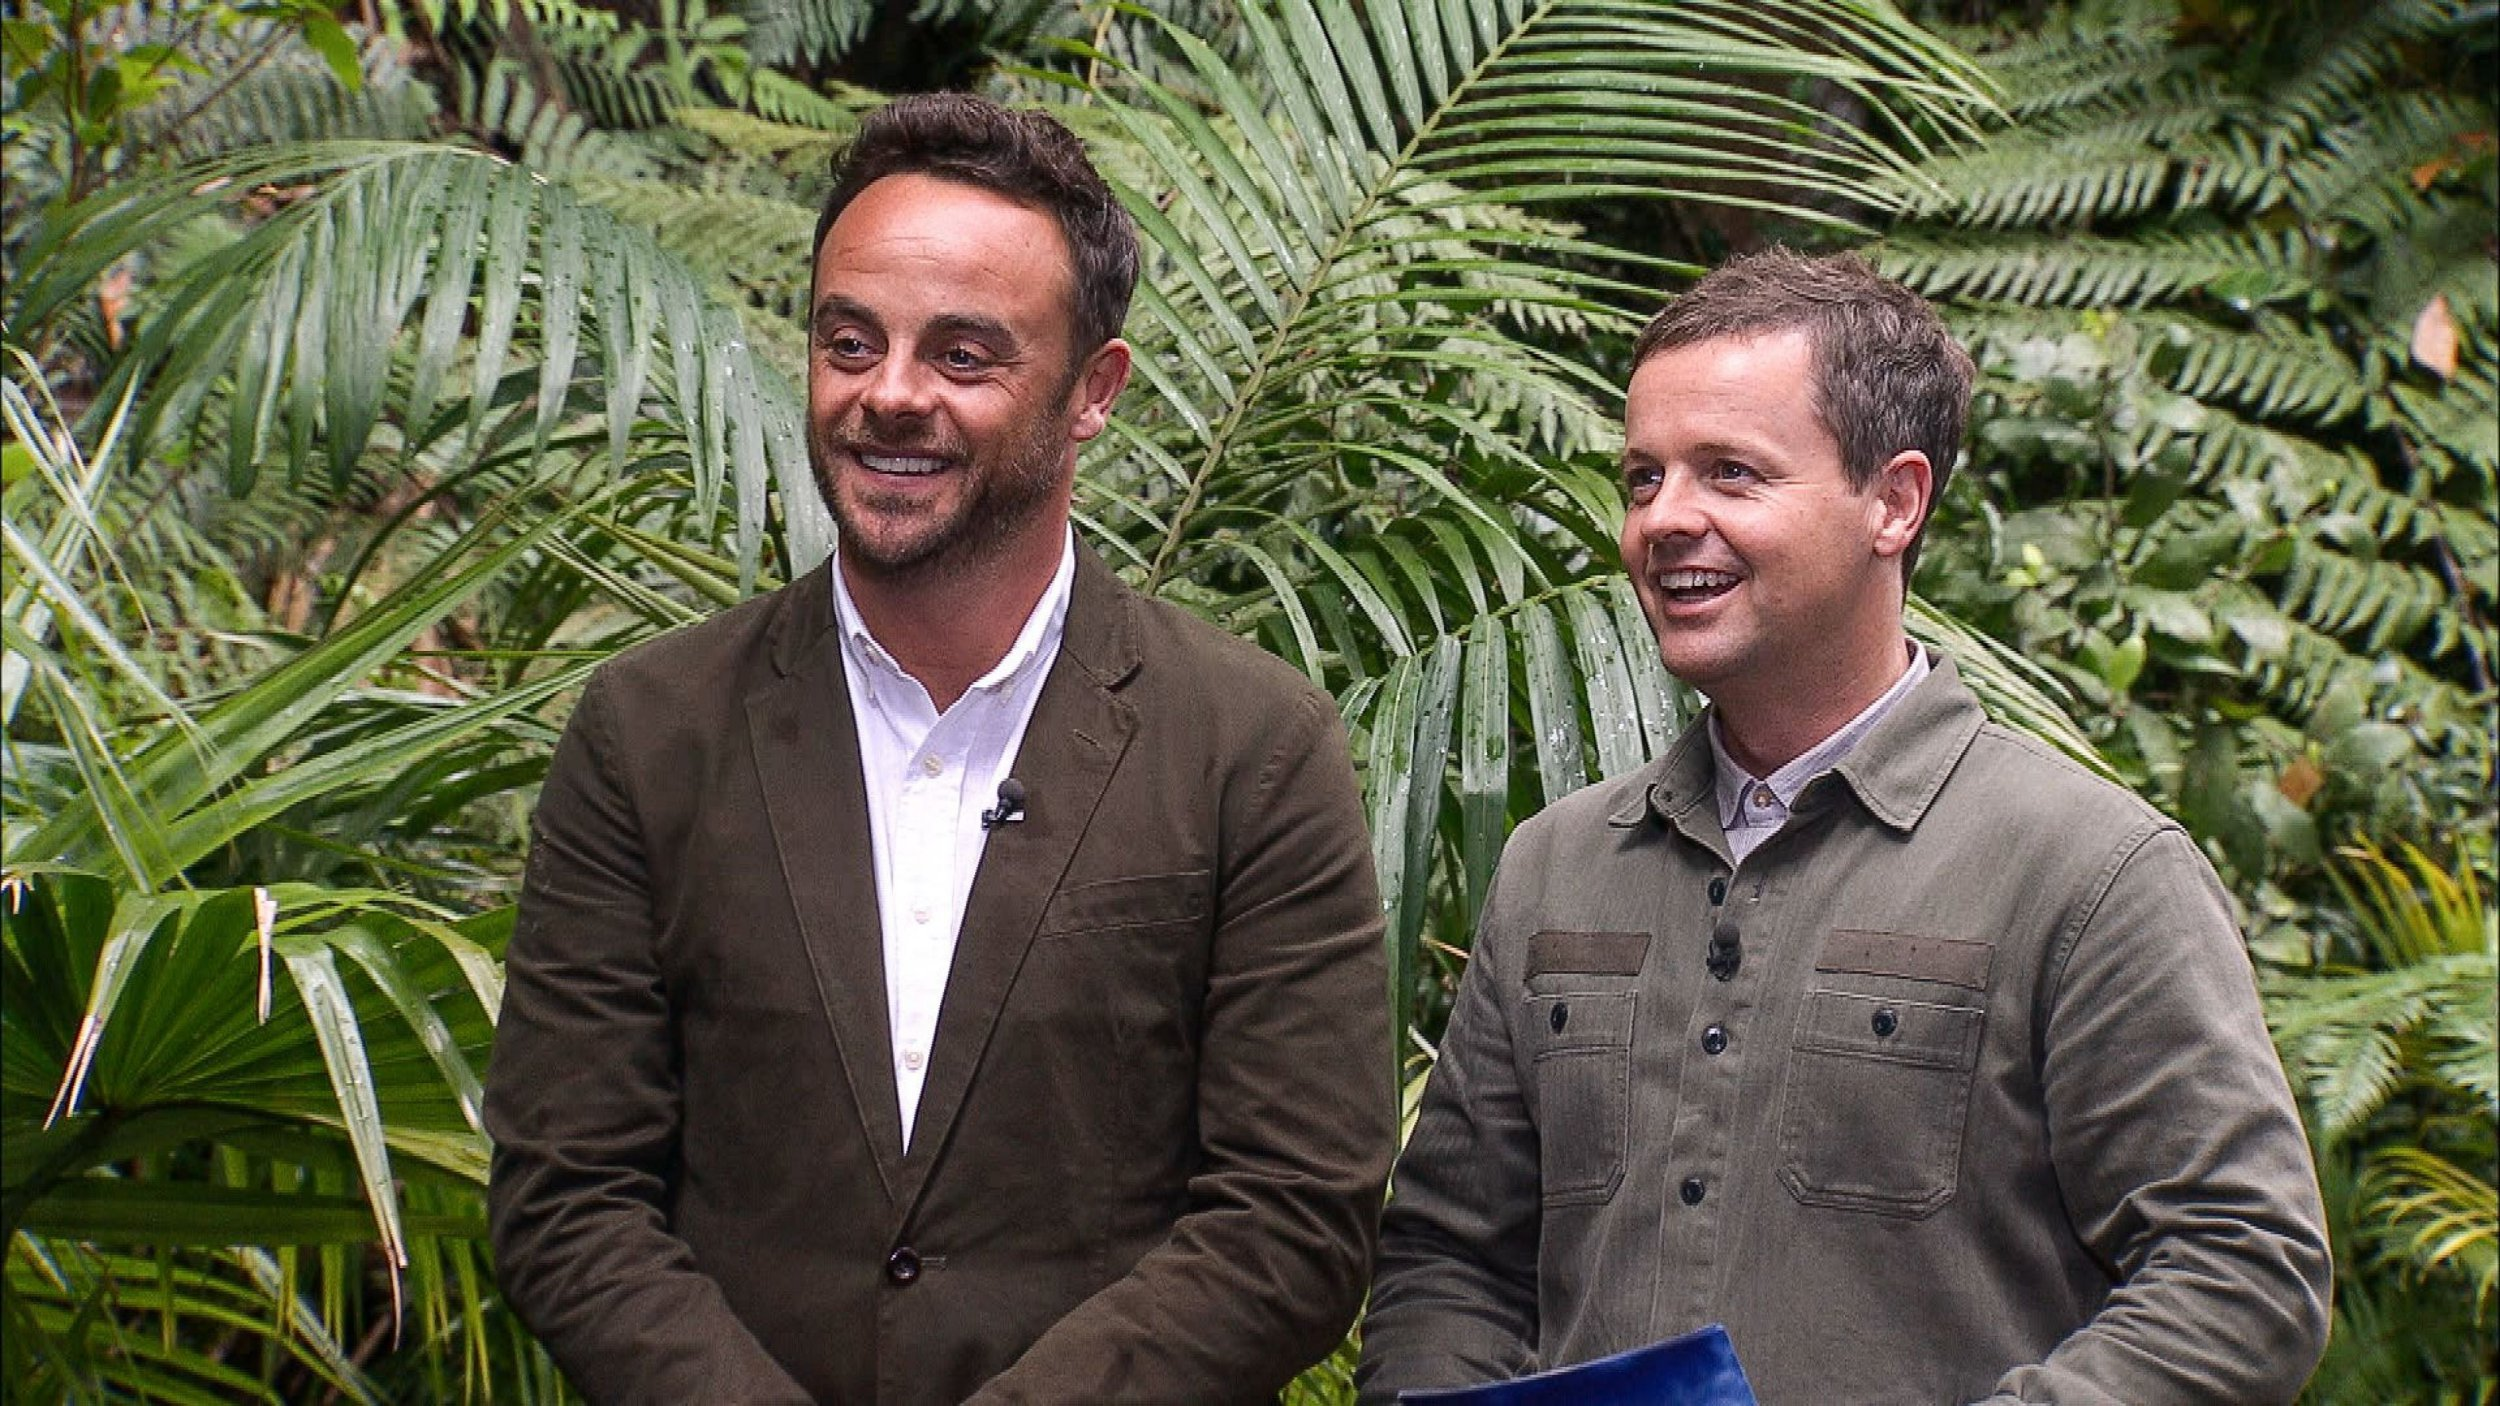 Ant McPartlin will be replaced on I'm A Celebrity… Get Me Out of Here! as Declan Donnelly lands new co-host,  ITV confirm